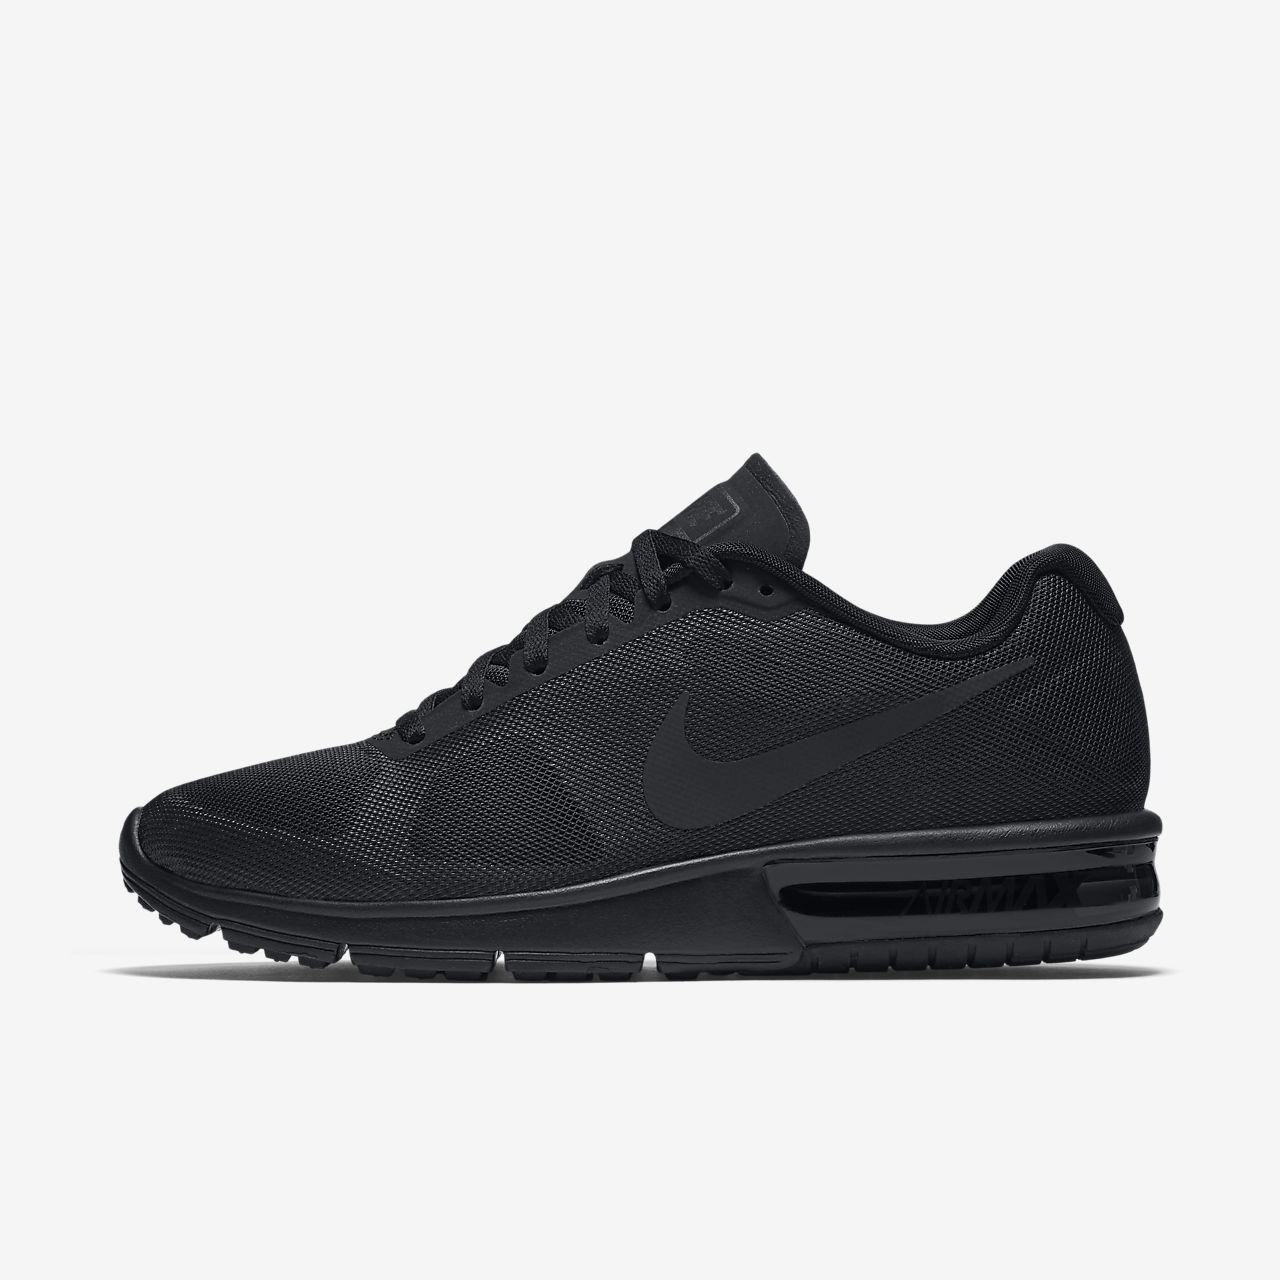 nike.air max ultranpremium.black women